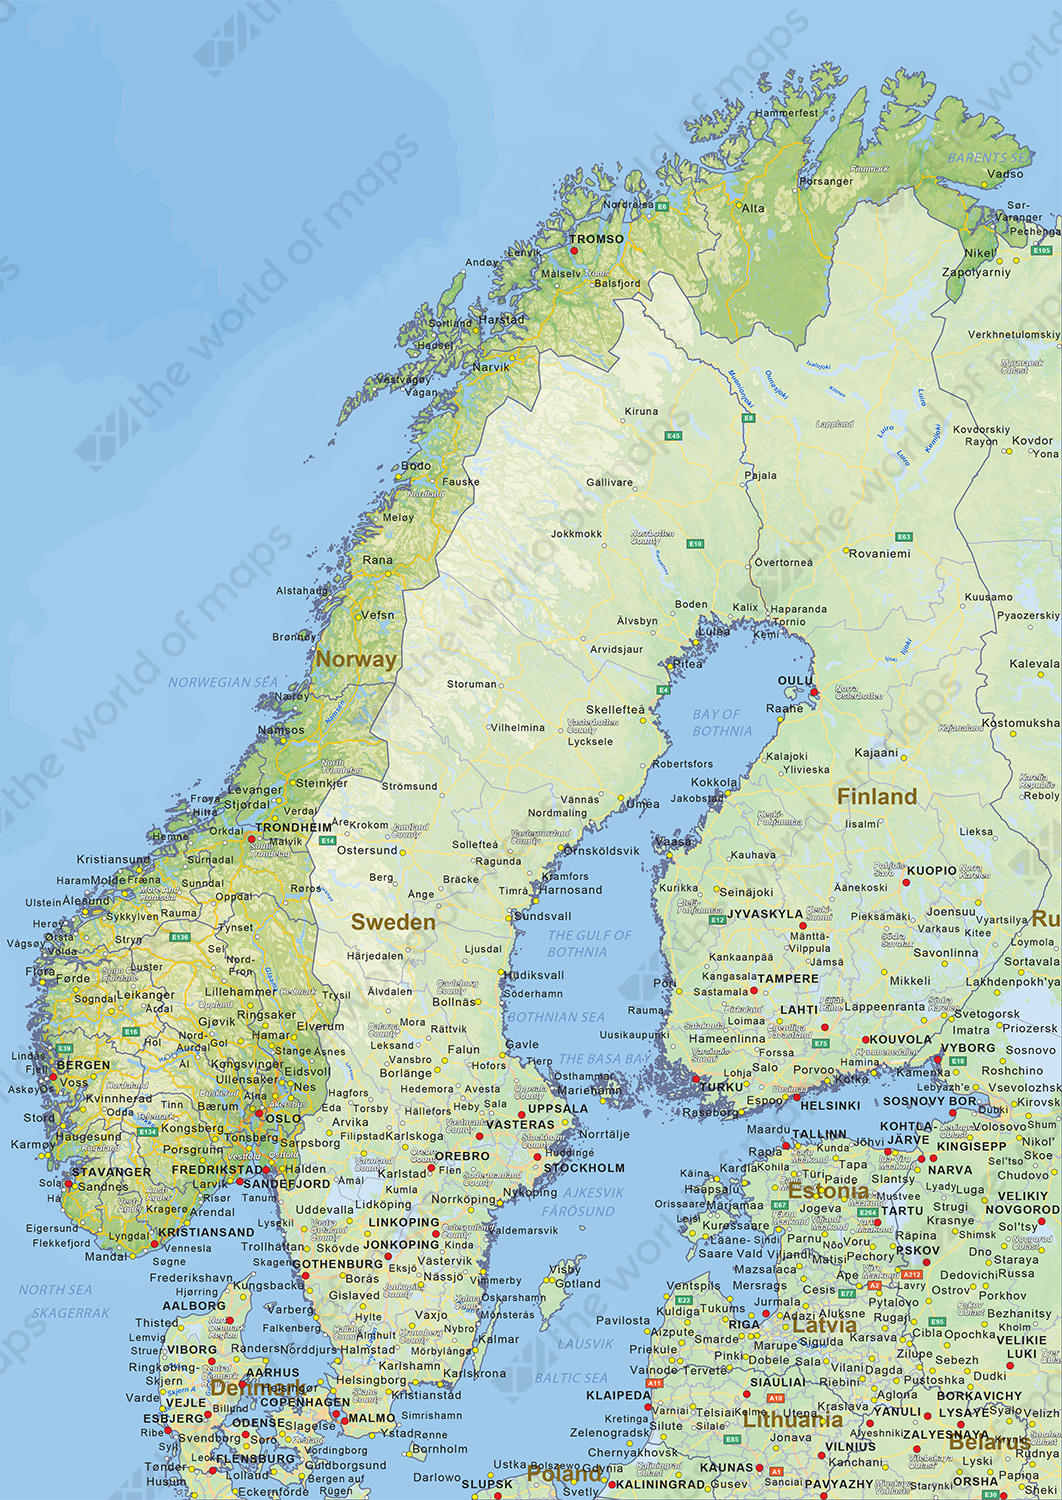 Digital physical map of Norway 1453 The World of Mapscom